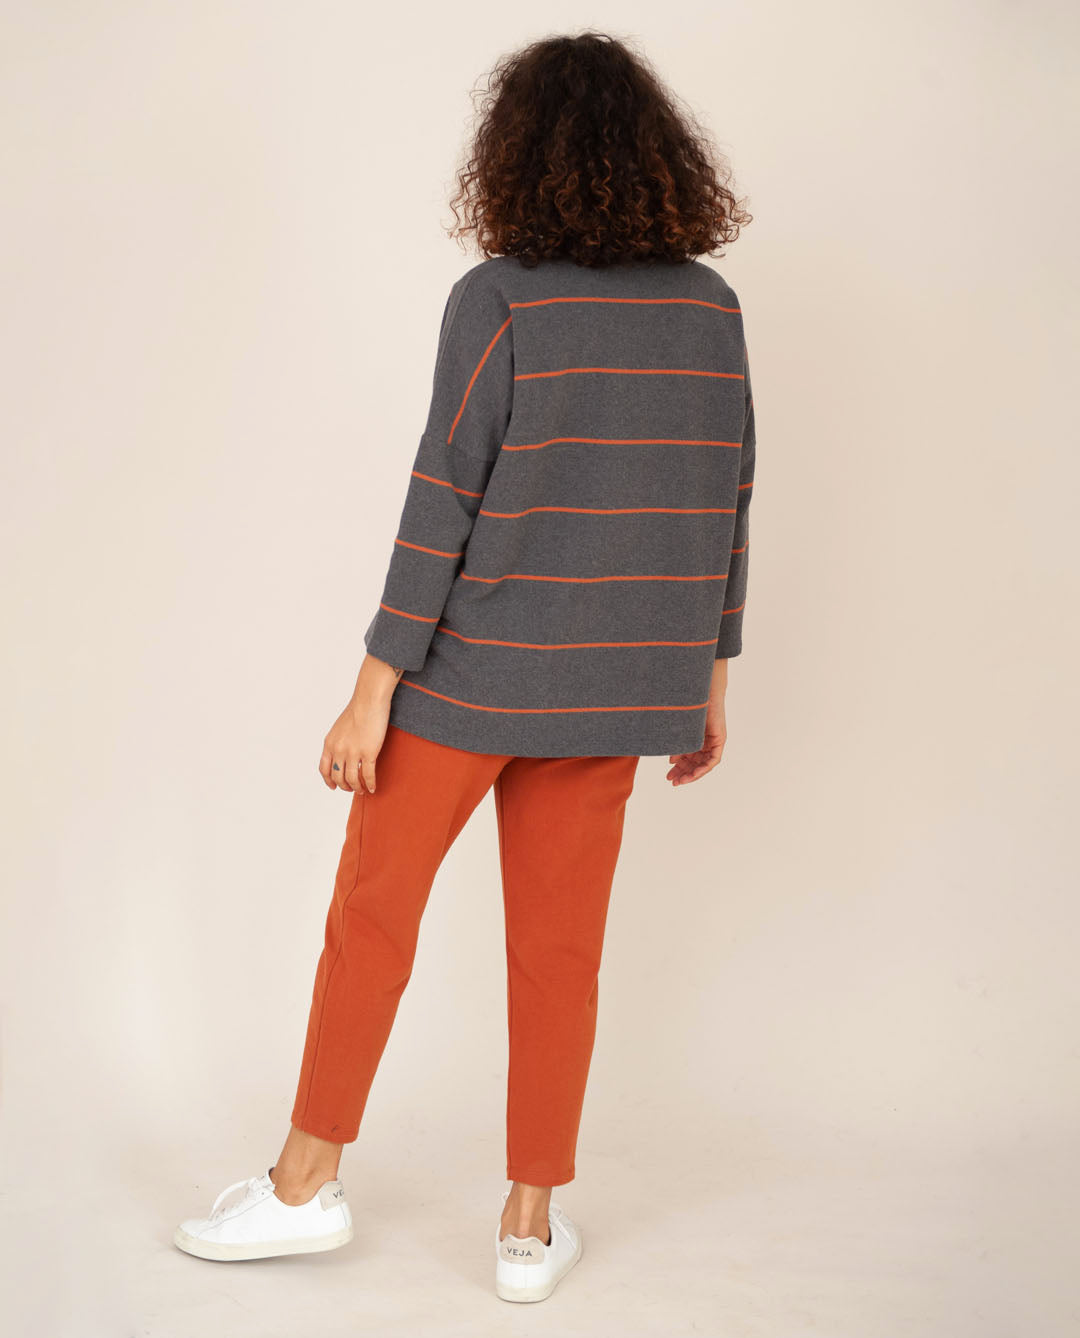 SOMA-SUE Organic Cotton Top In Grey Marl & Cinnamon